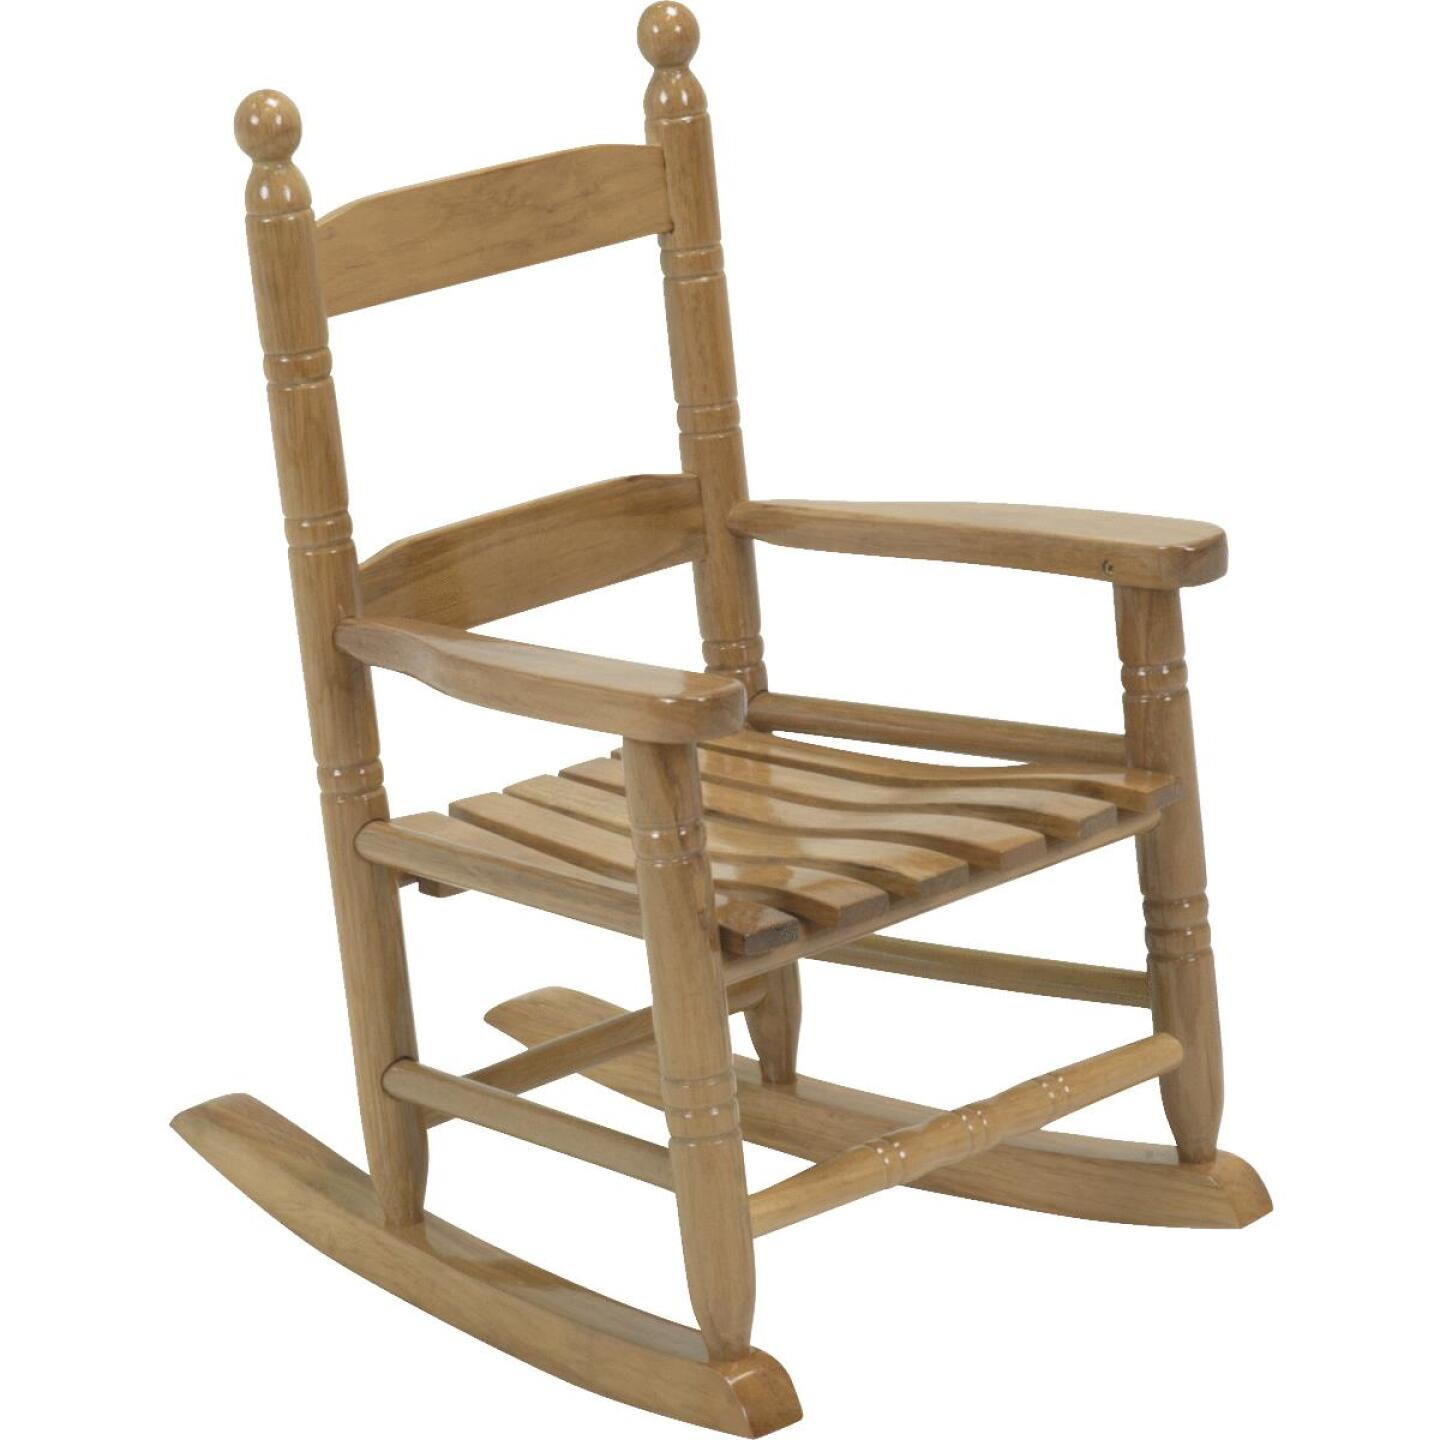 Knollwood Natural Wood Child Rocking Chair Image 1